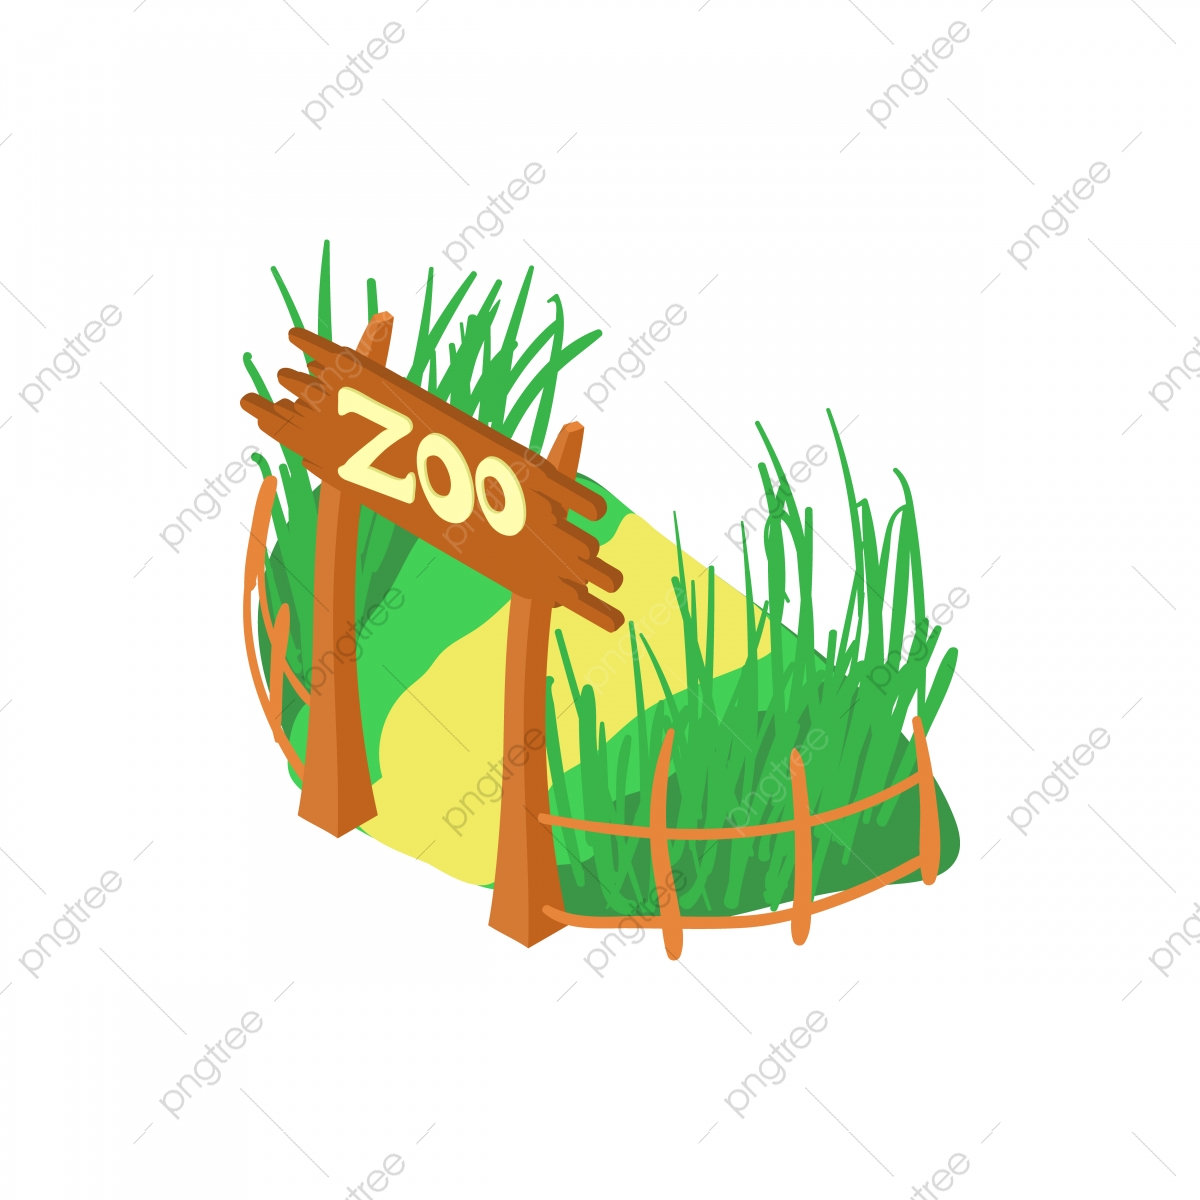 Zoo Icon Cartoon Style Zoo Clipart Style Icons Cartoon Icons Png And Vector With Transparent Background For Free Download 1300 x 1272 jpeg 222. https pngtree com freepng zoo icon cartoon style 5144191 html